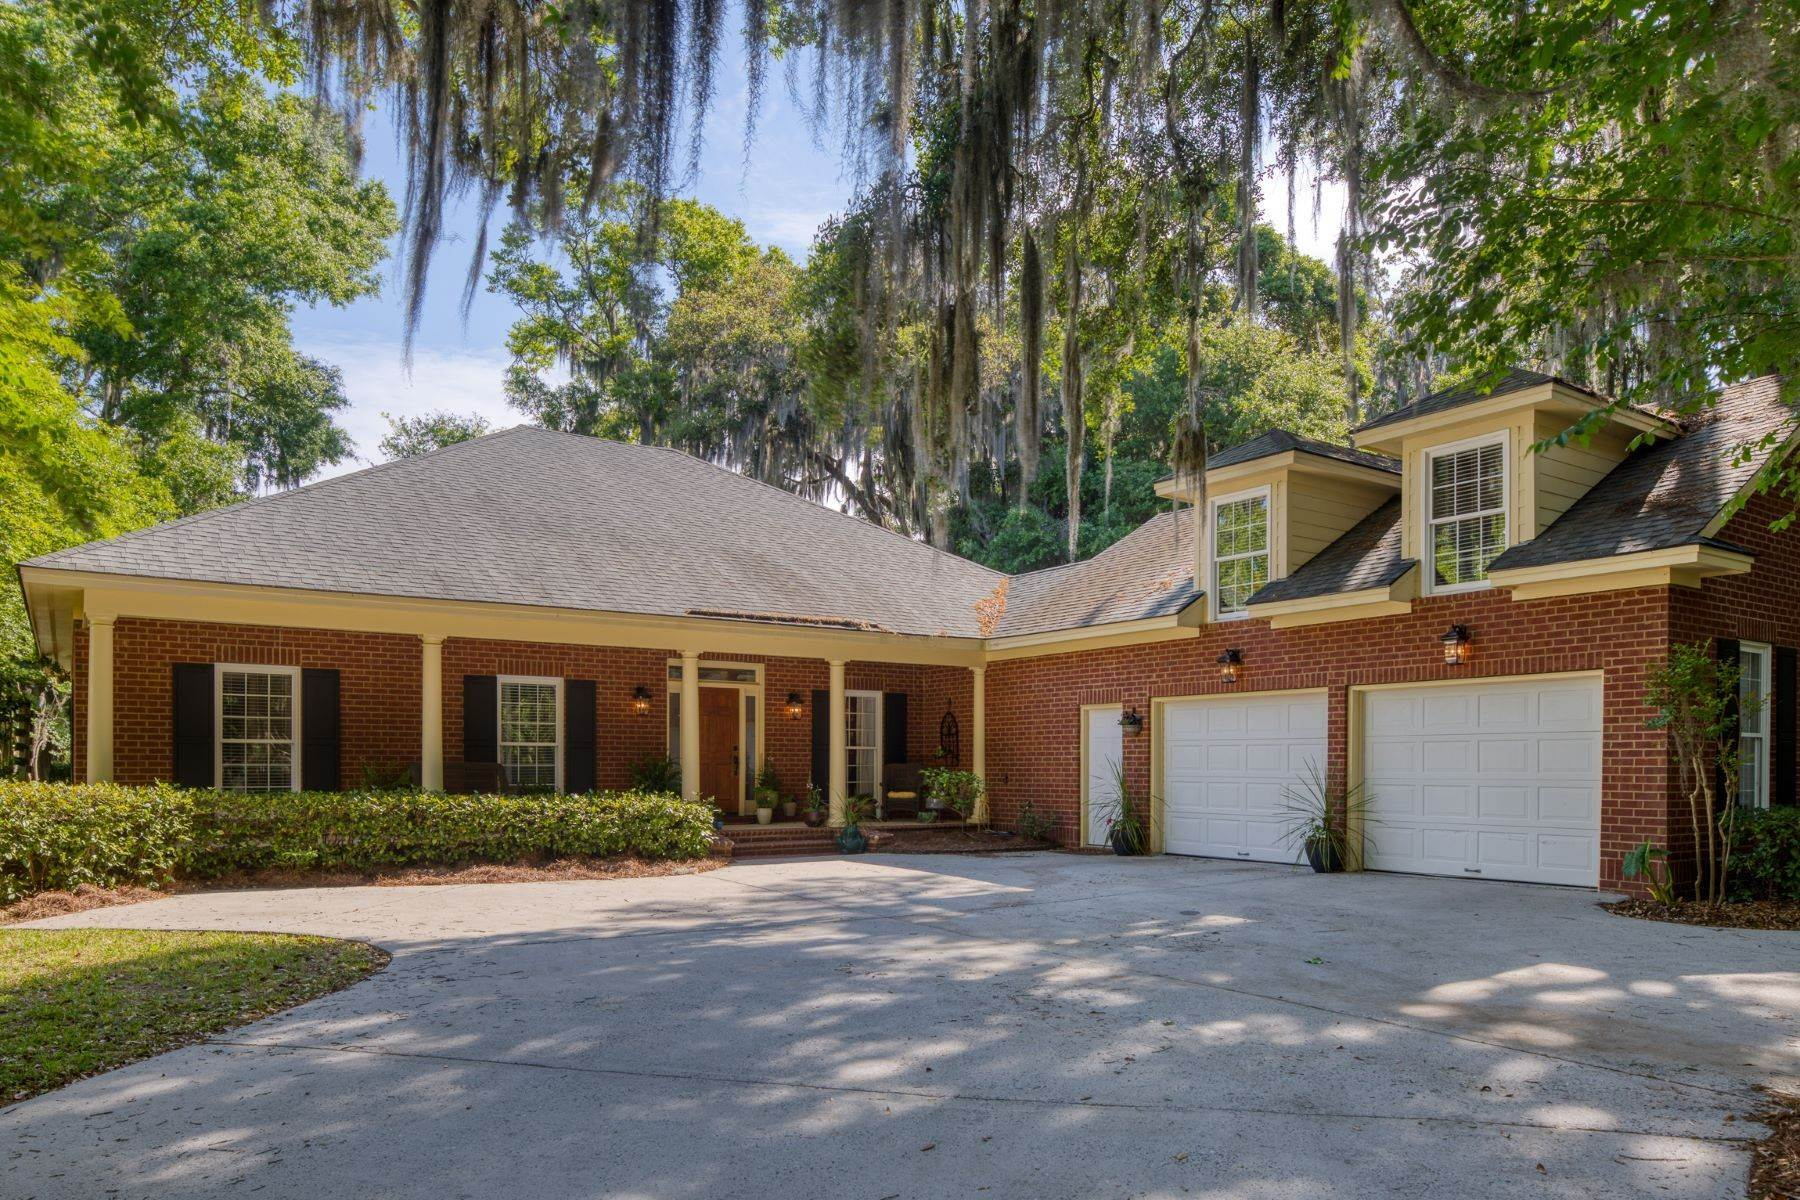 Single Family Homes for Sale at Traditional Brick Residence In One Of Savannah's Most Prestigious Communities 4 Captain Browns Way Skidaway Island, Georgia 31411 United States